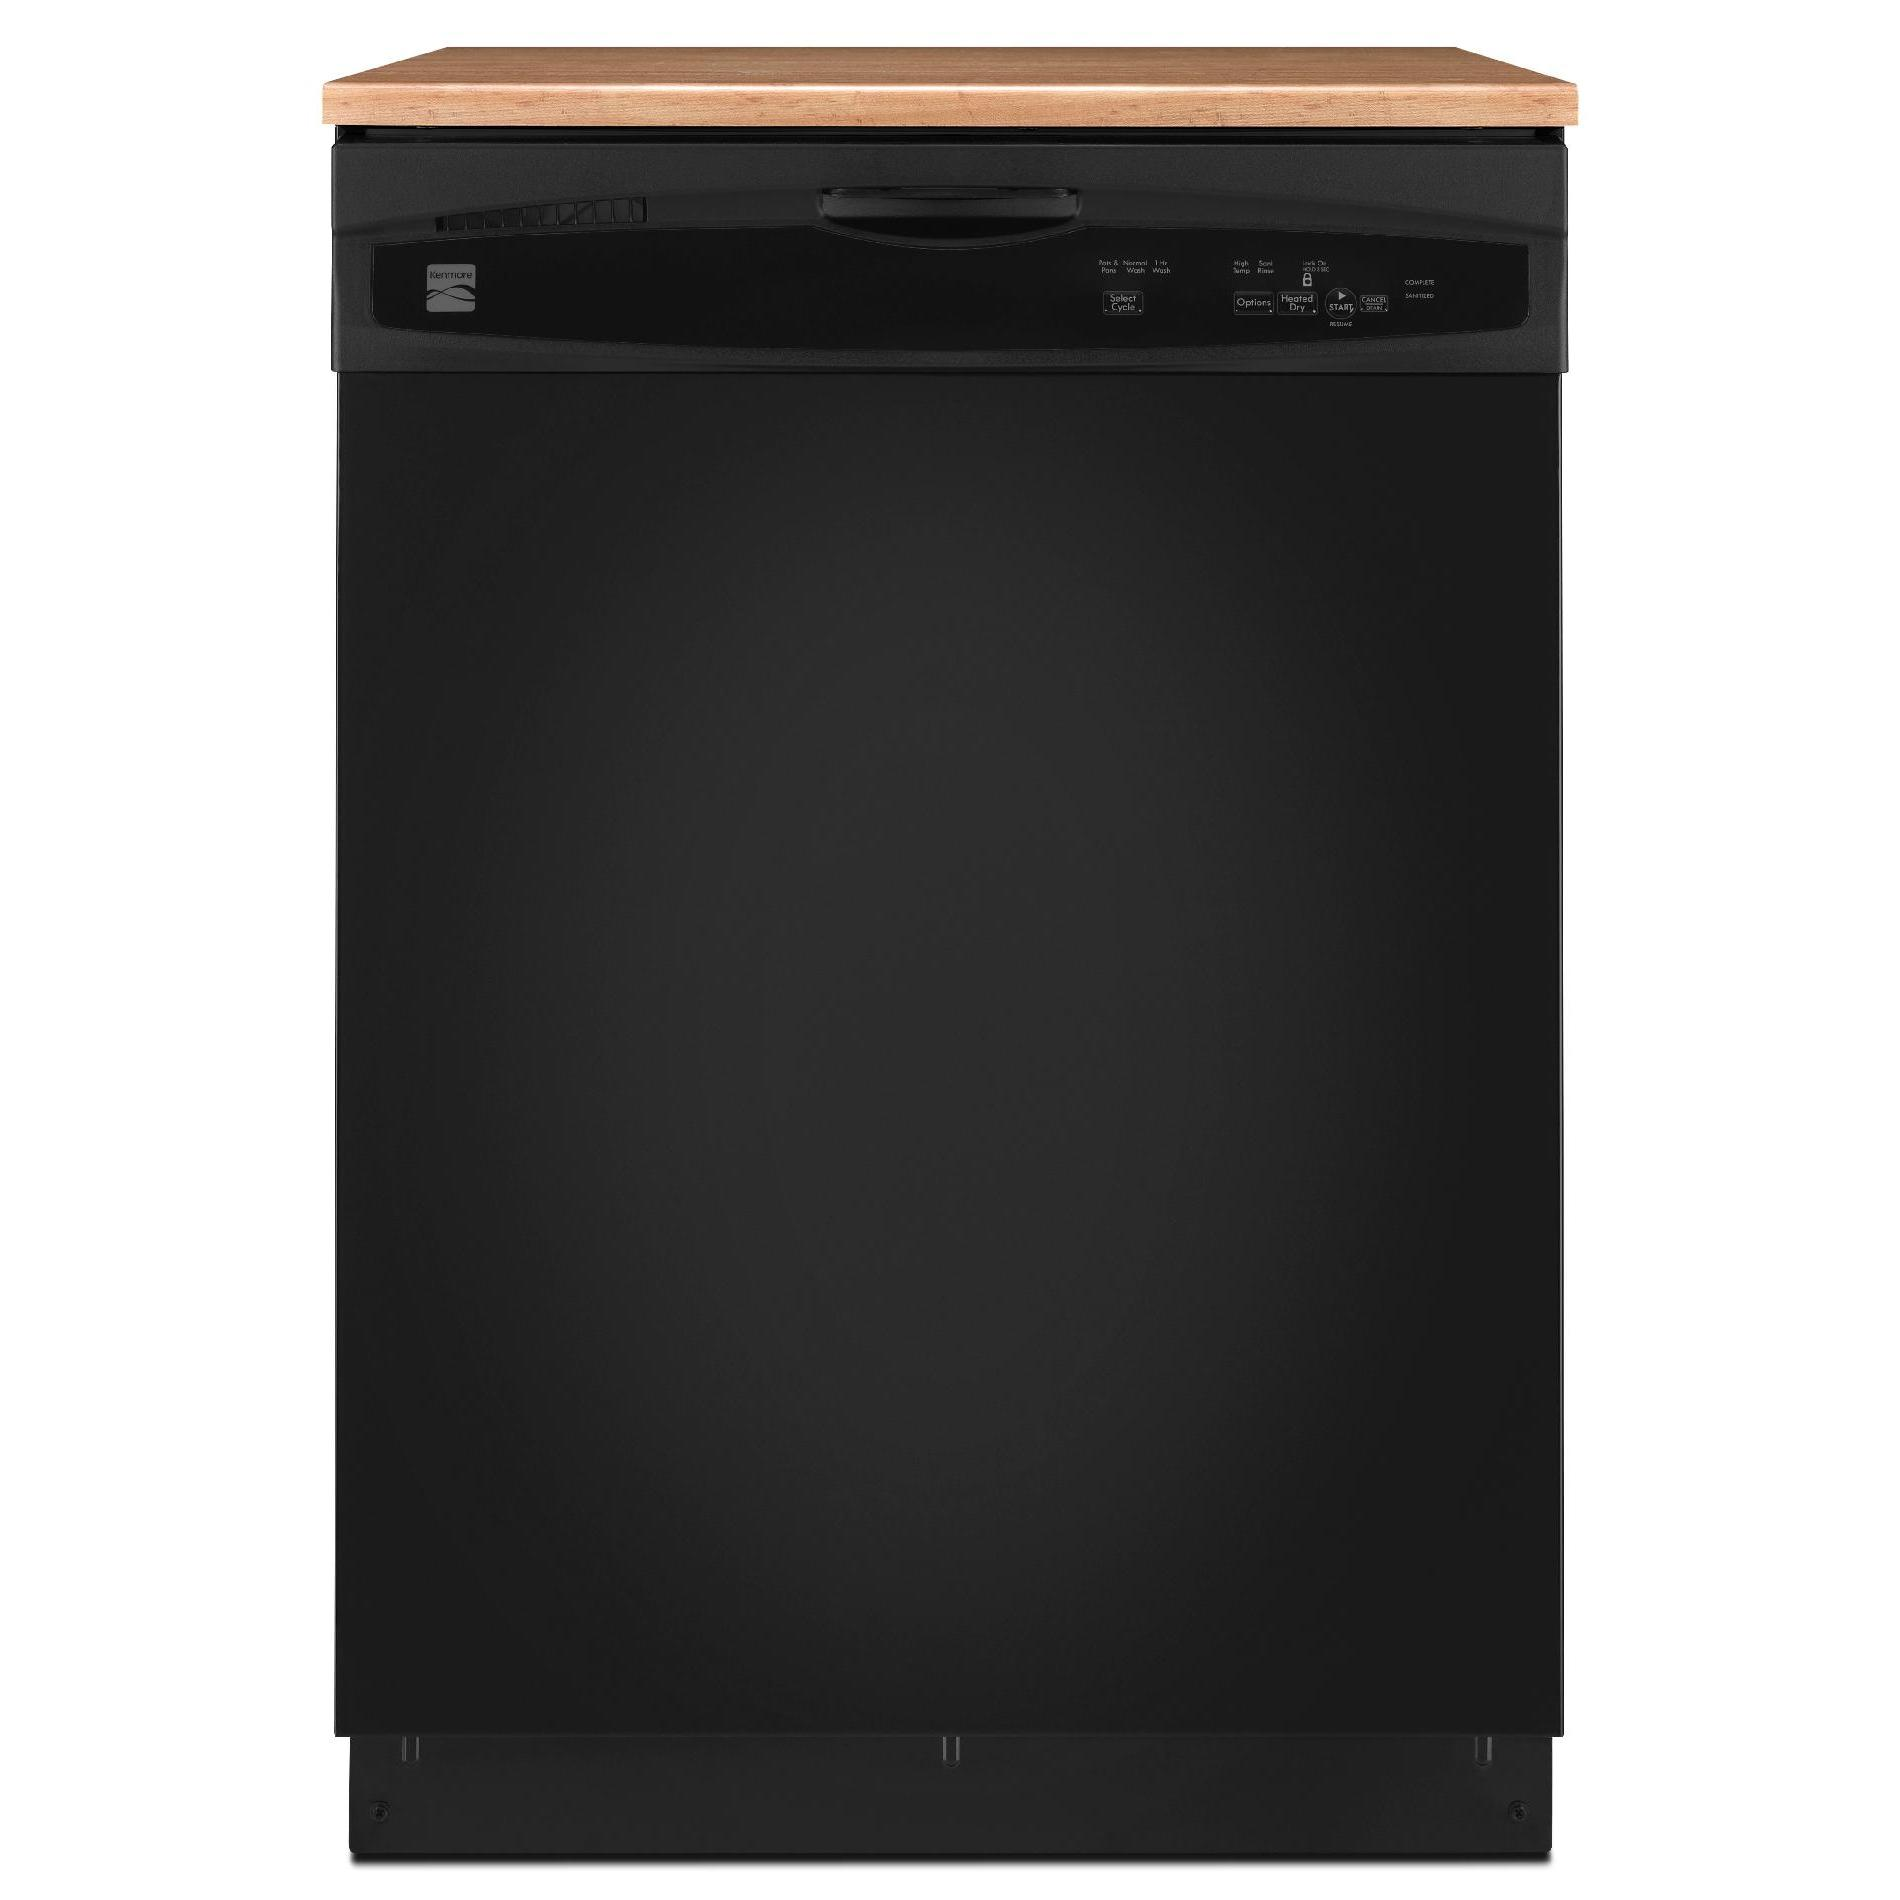 Kenmore 24 Portable Dishwasher - Black